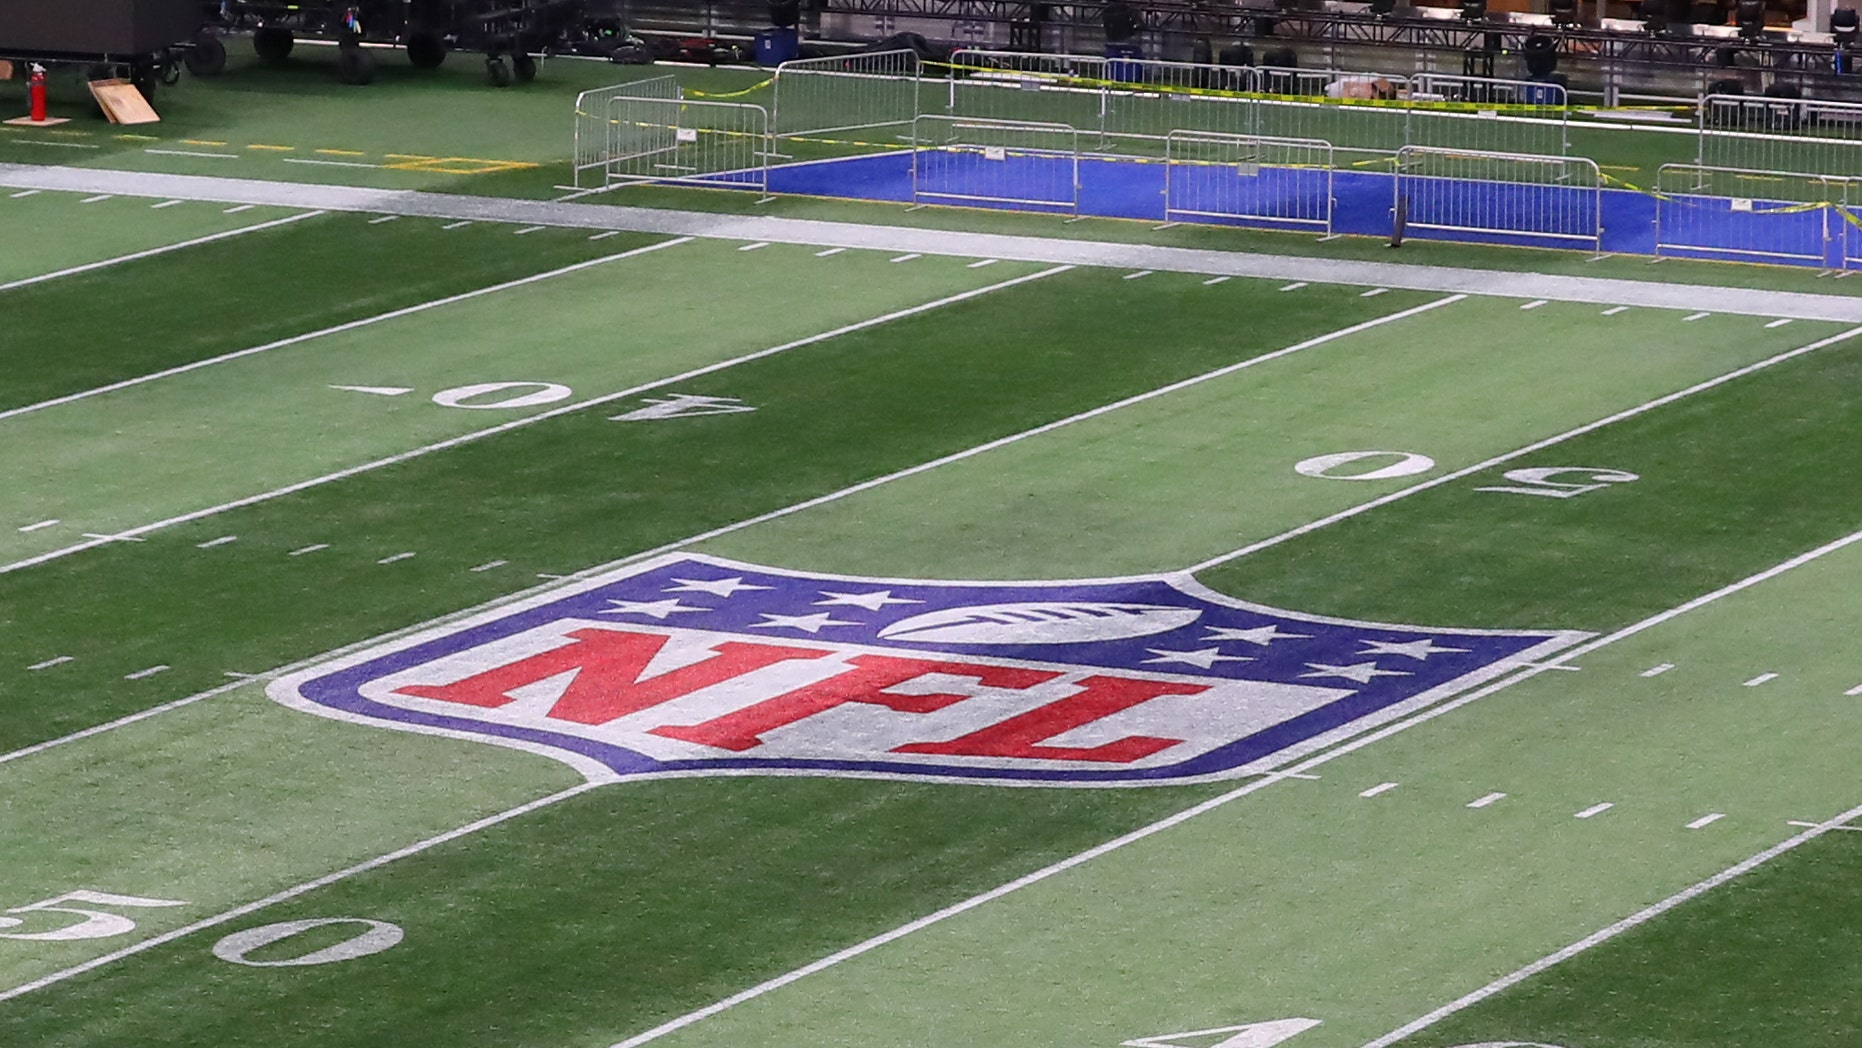 The National Football League logo on the Field inside Mercedes Benz Stadium during Super Bowl LIII week on January 28, 2019, in Atlanta, GA. (Photo by Rich Graessle/Icon Sportswire via Getty Images)